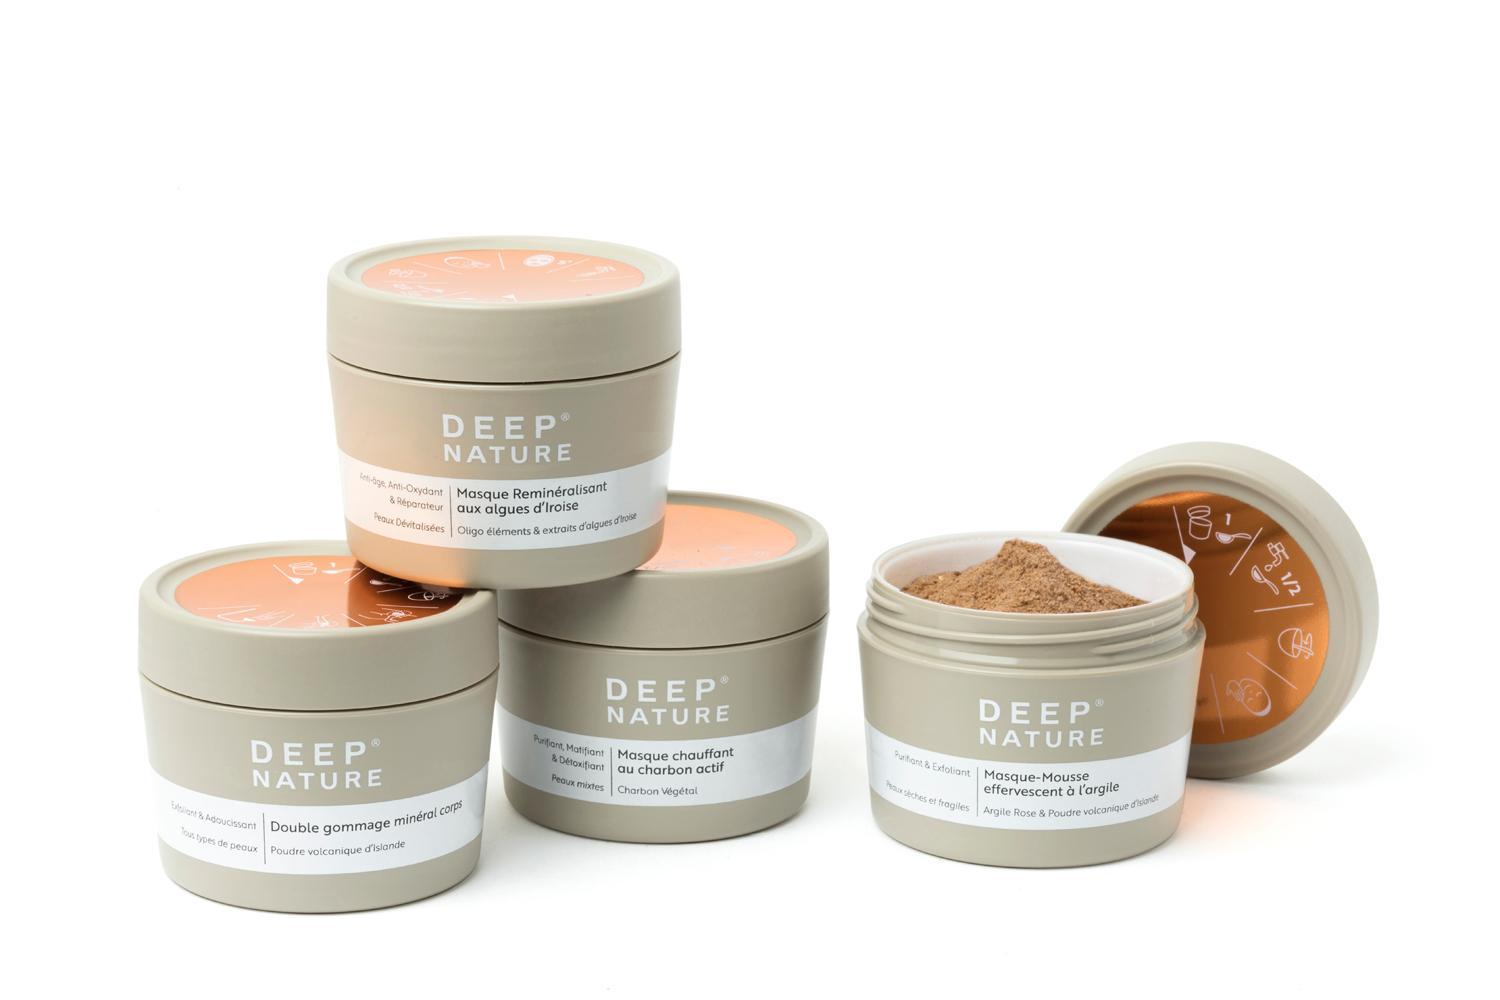 Deep Nature developed its new skincare range after receiving a number of customer requests